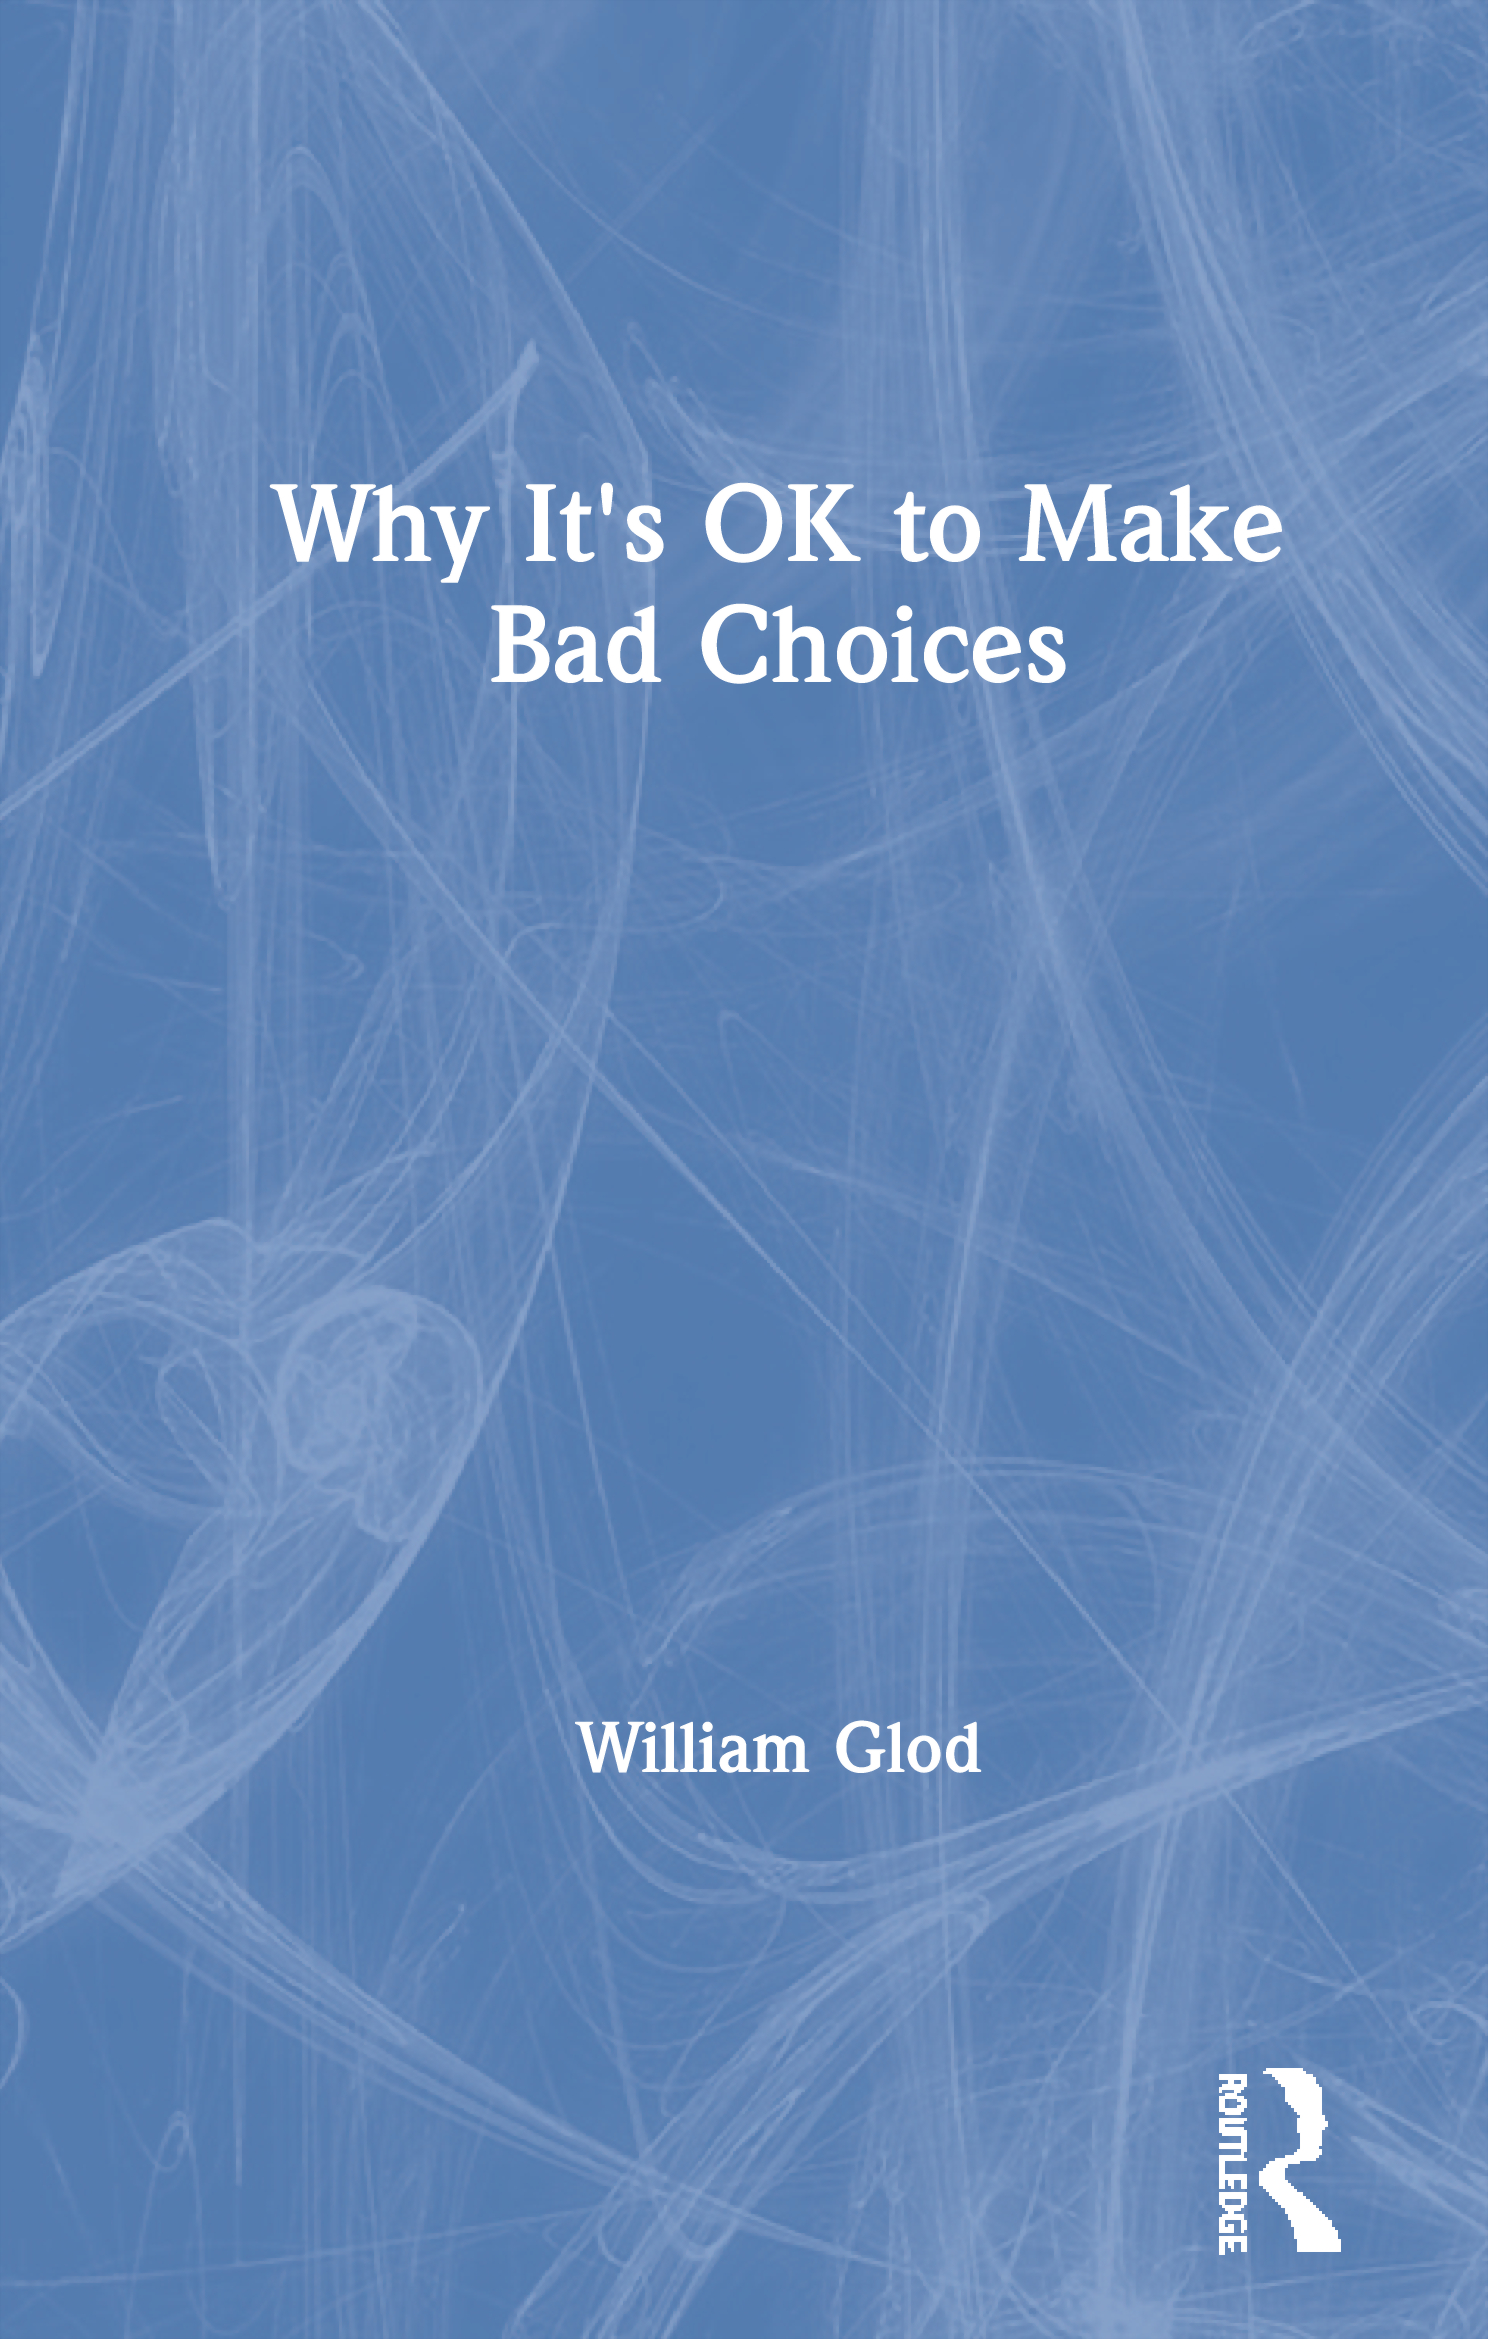 Why It's OK to Make Bad Choices book cover